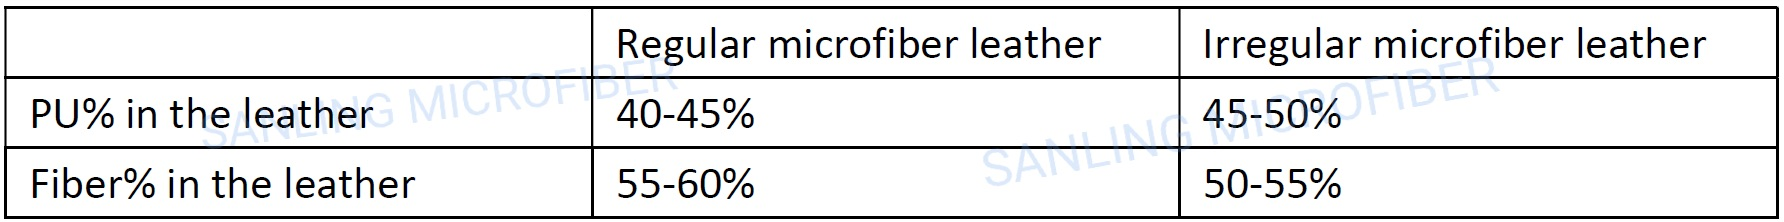 composition of microfiber leather